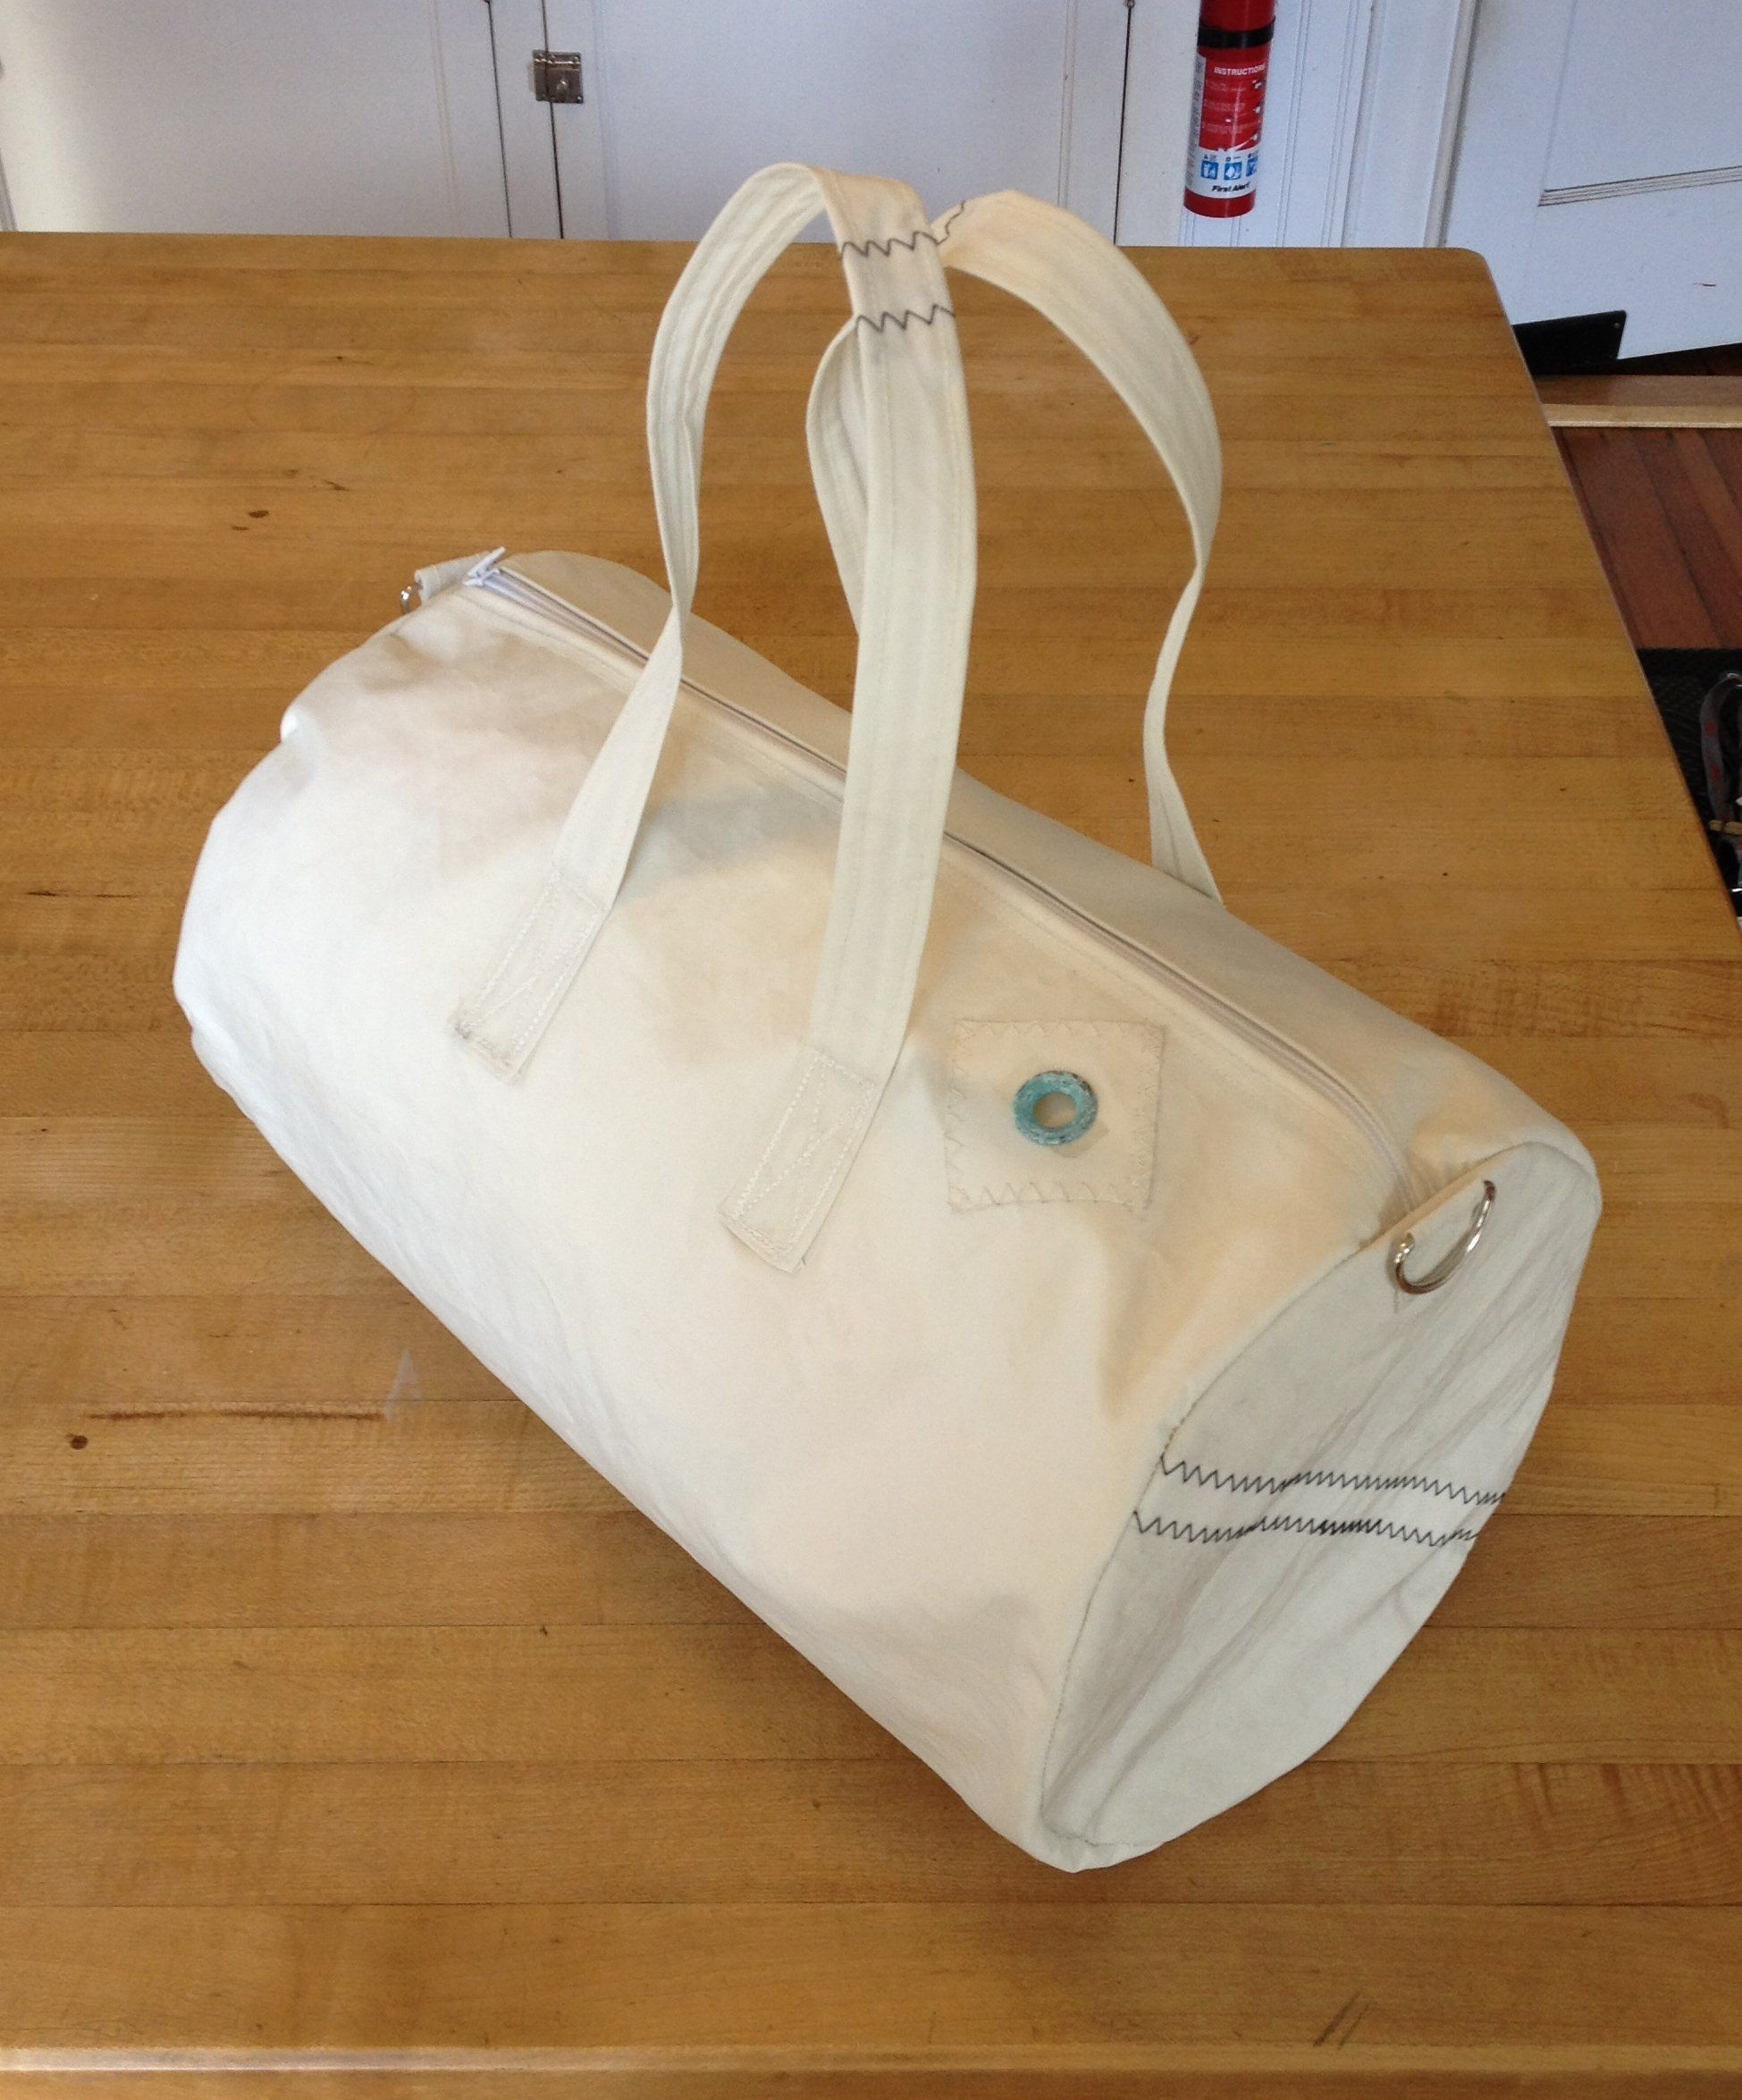 8bd1130893c The following instructable details how to build your own gym/duffel bag.  The pattern is simple, and easy to make. I chose to create my gym bag  because I had ...